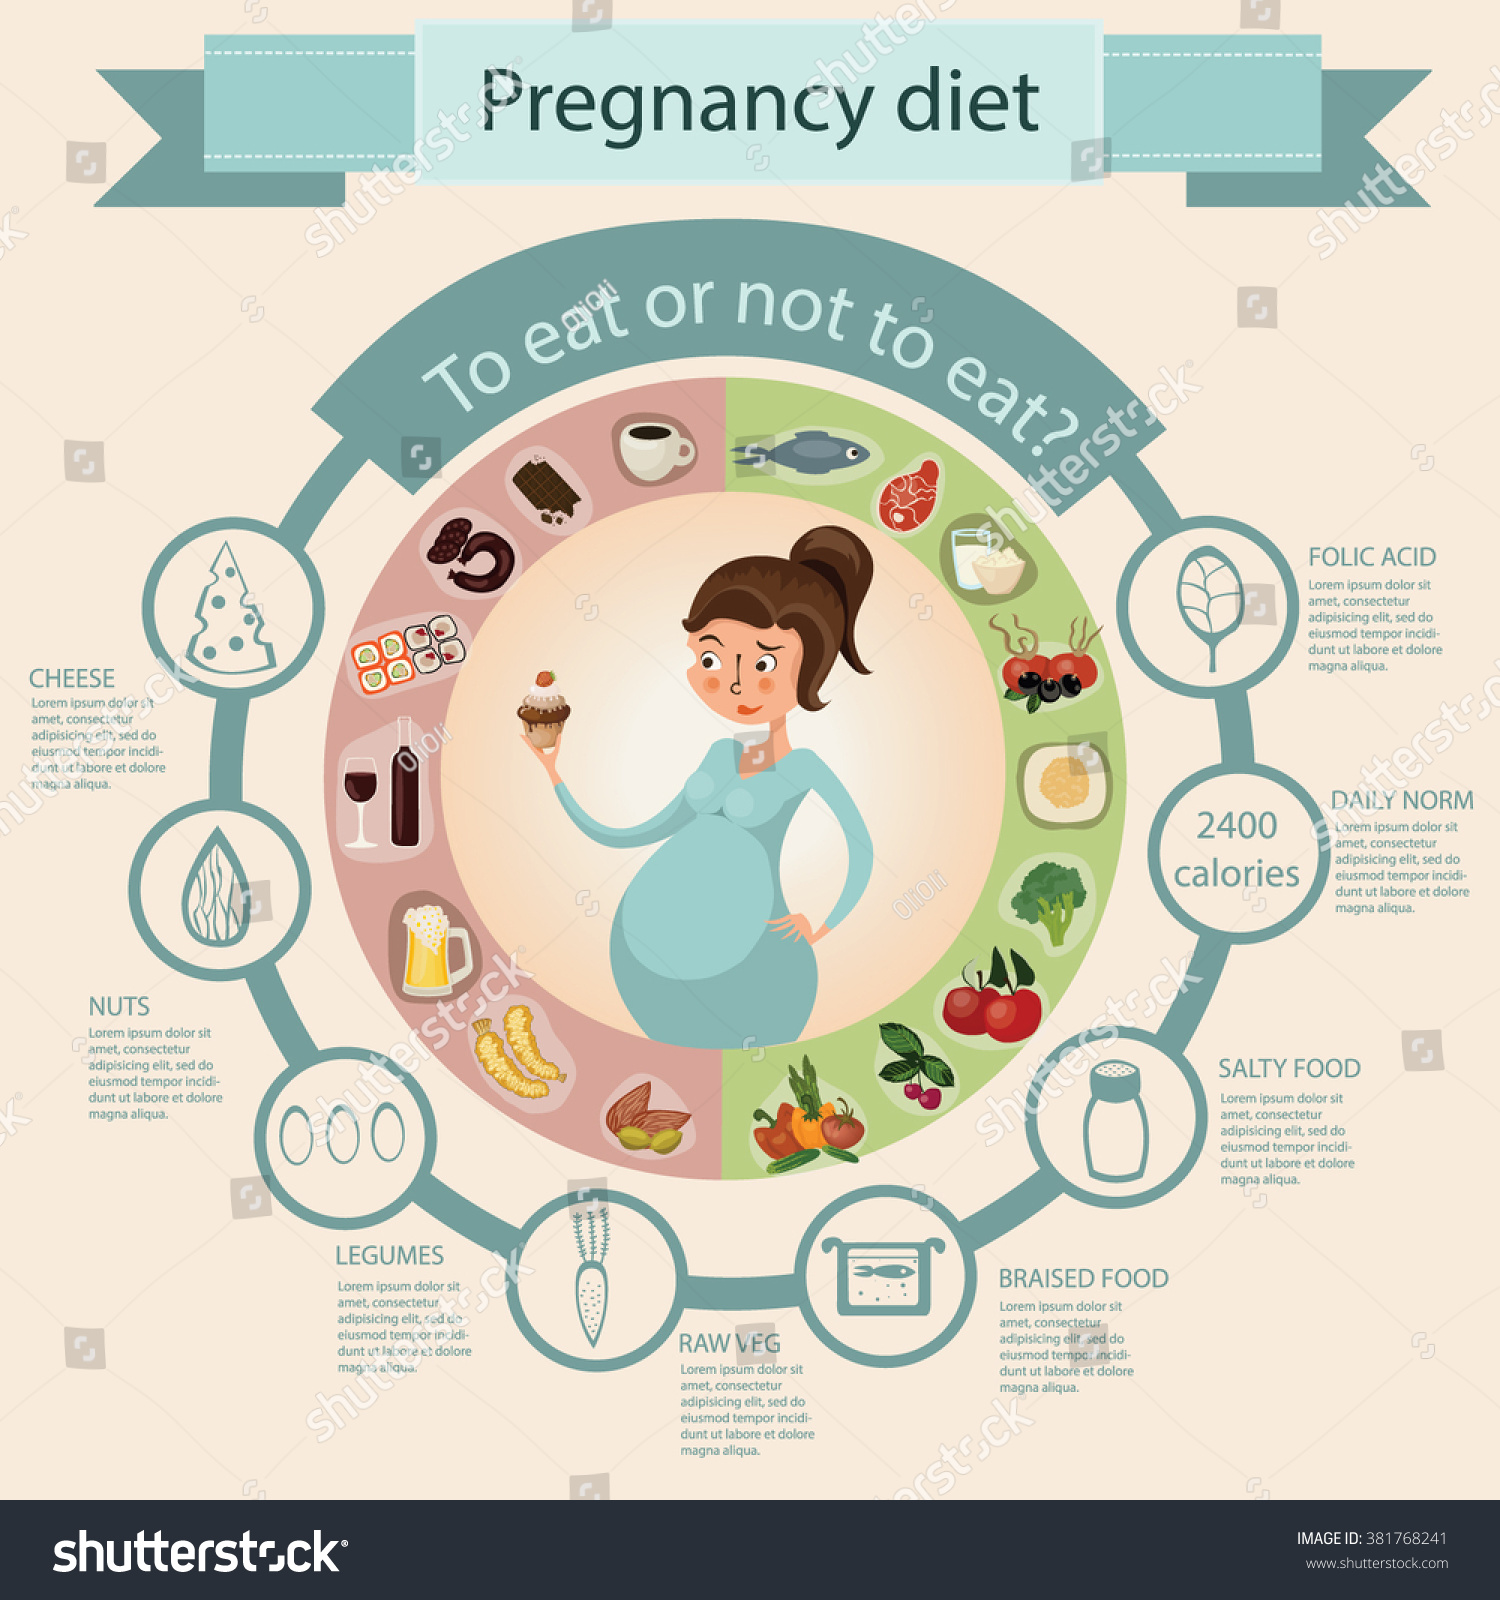 Healthy diet pregnant woman what eat stock vector for Fish not to eat when pregnant